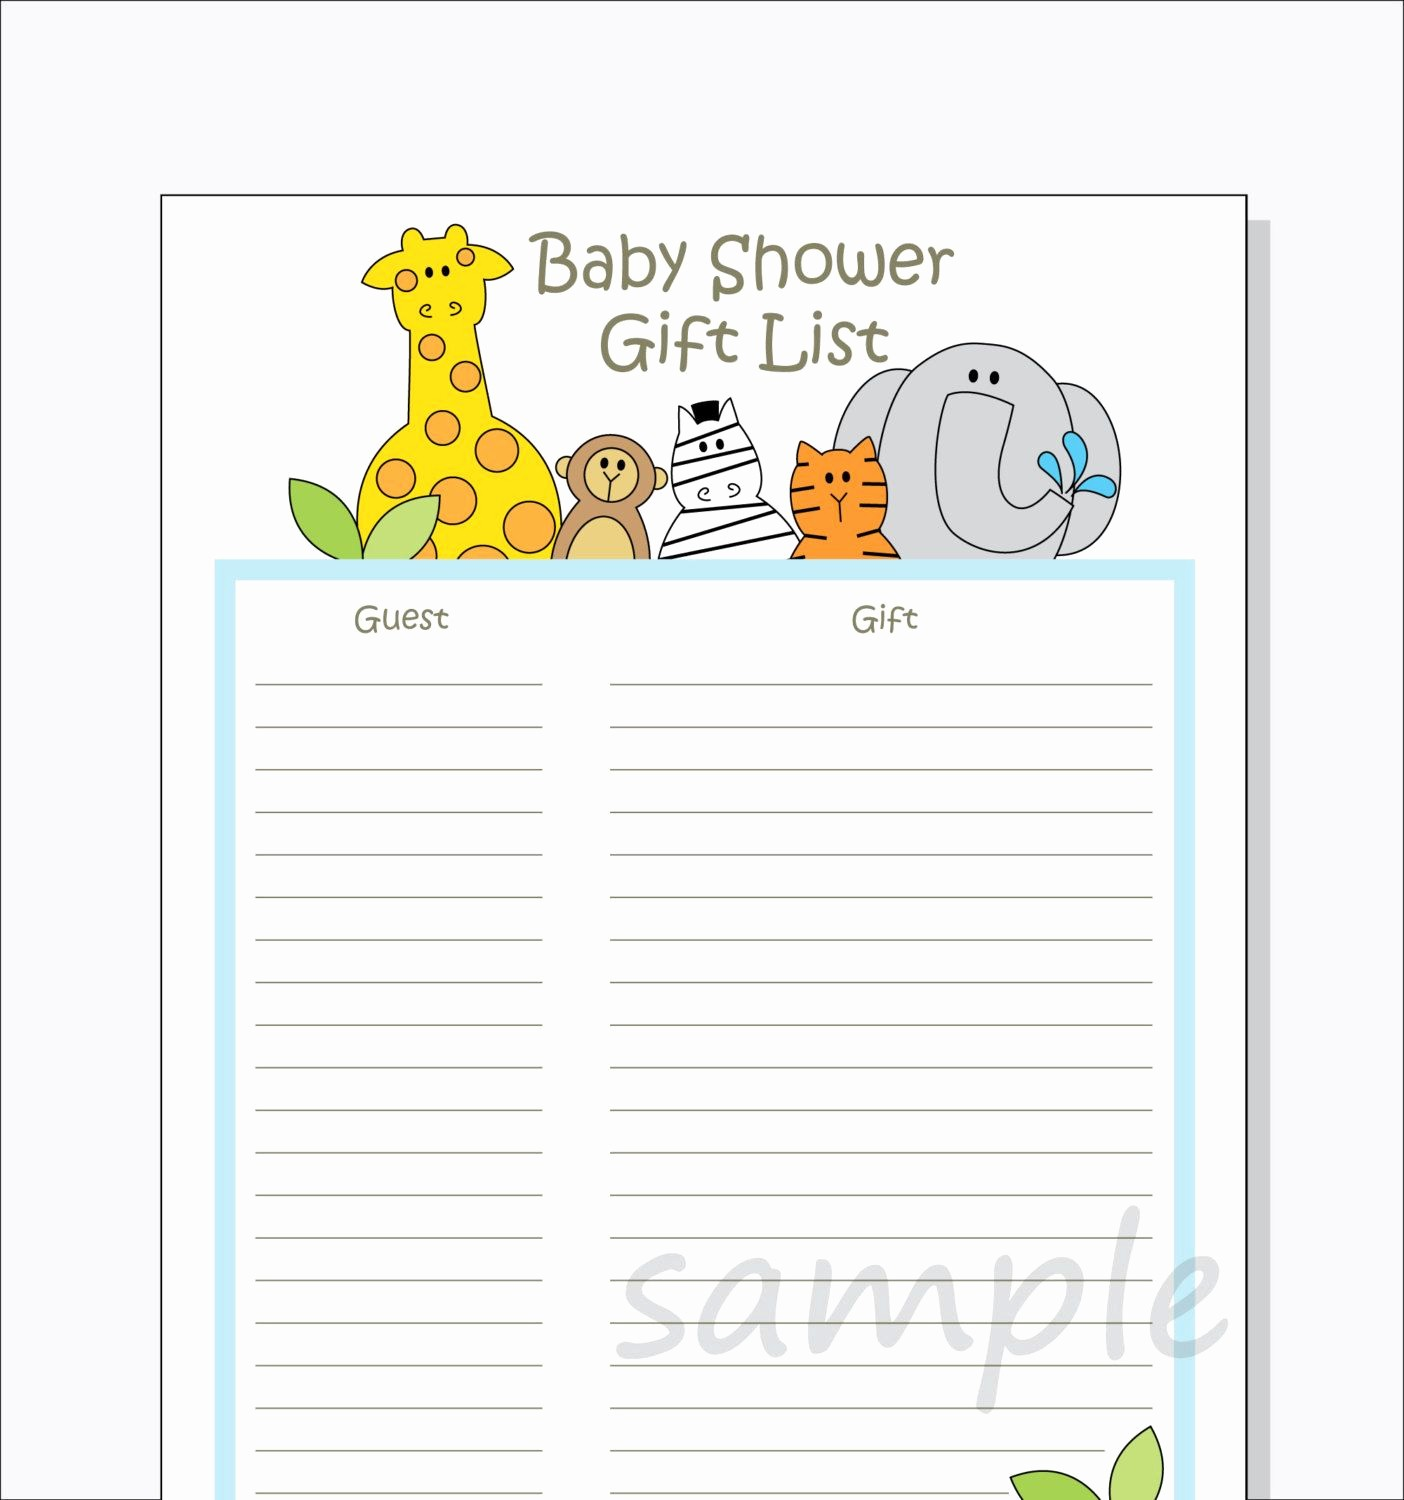 Baby Shower Guest List Printable Beautiful Diy Baby Shower Guest Gift List Printable by